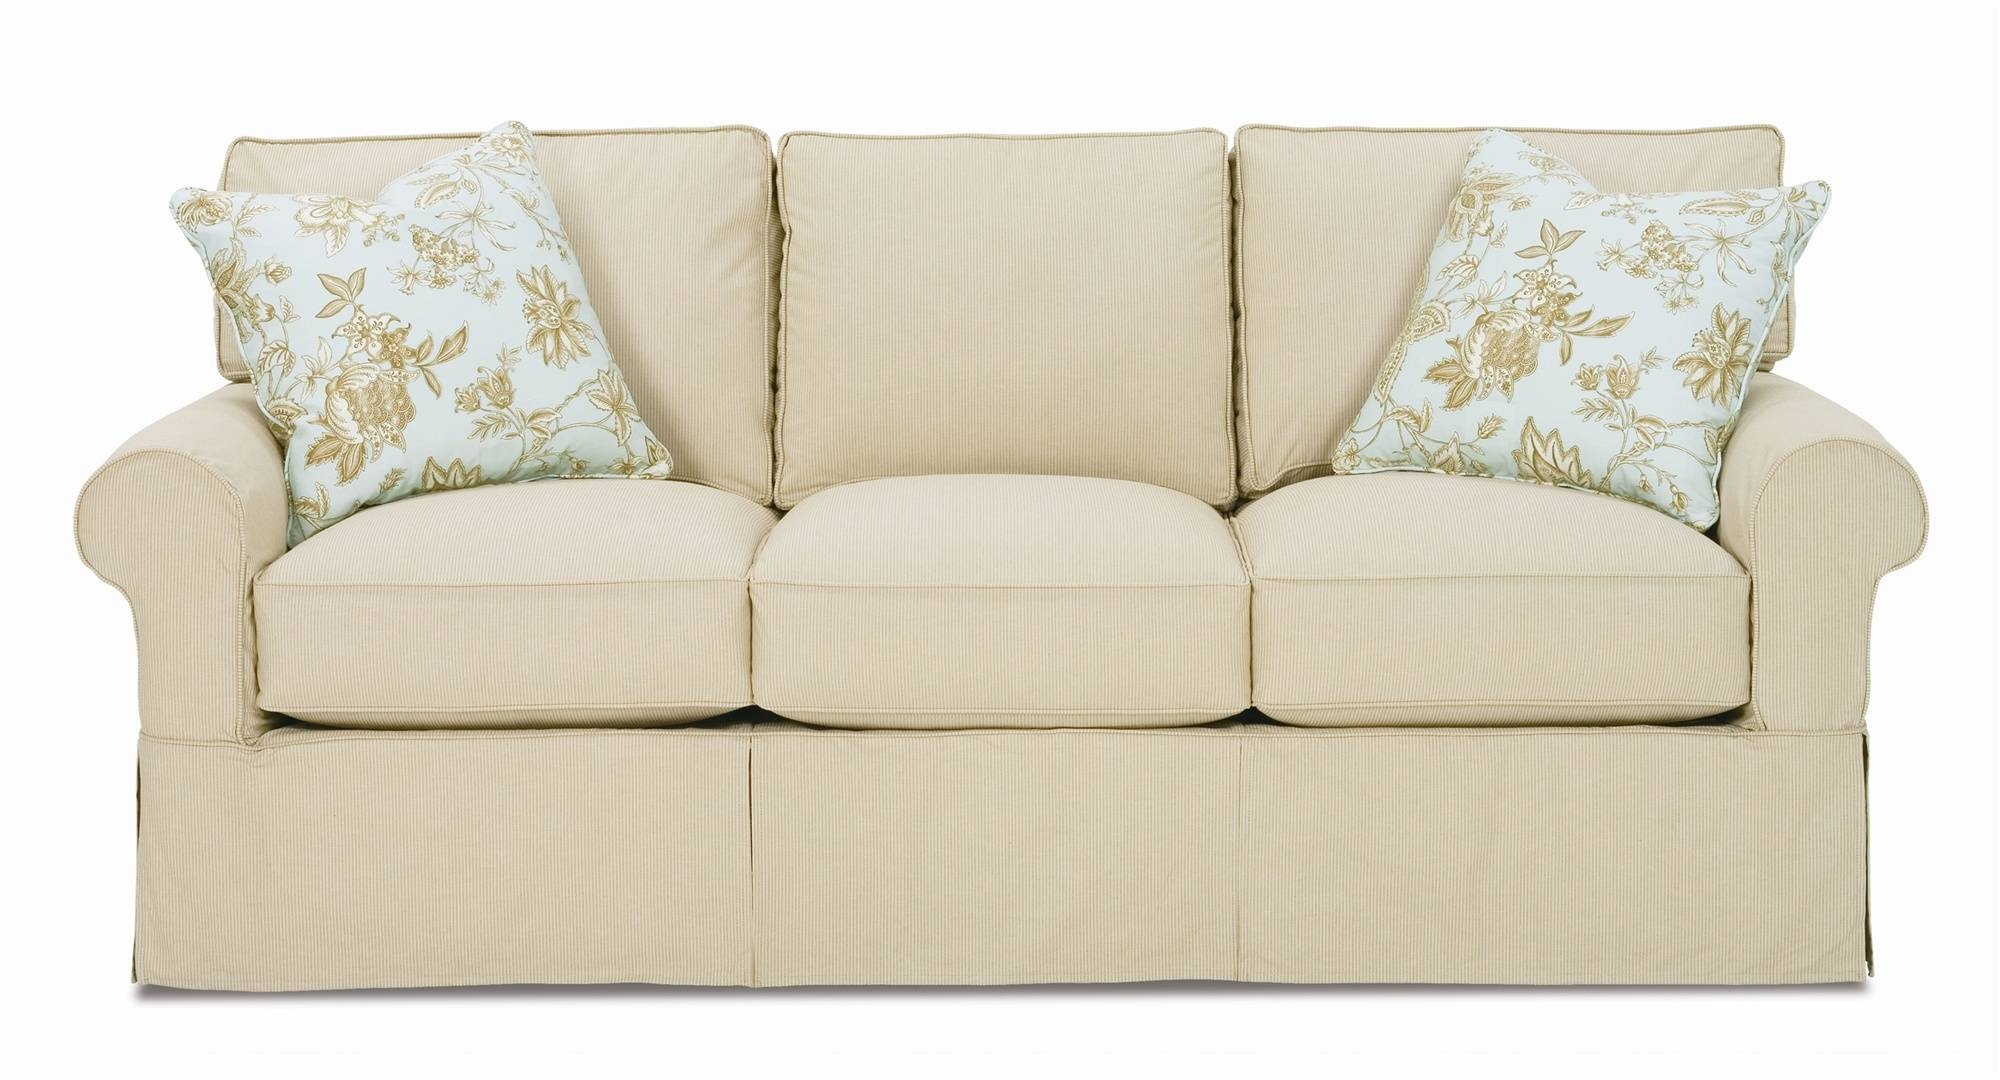 Sofas Center : Covers For Sofas Clearance Chair And Loveseats Arm within Clearance Sofa Covers (Image 15 of 30)